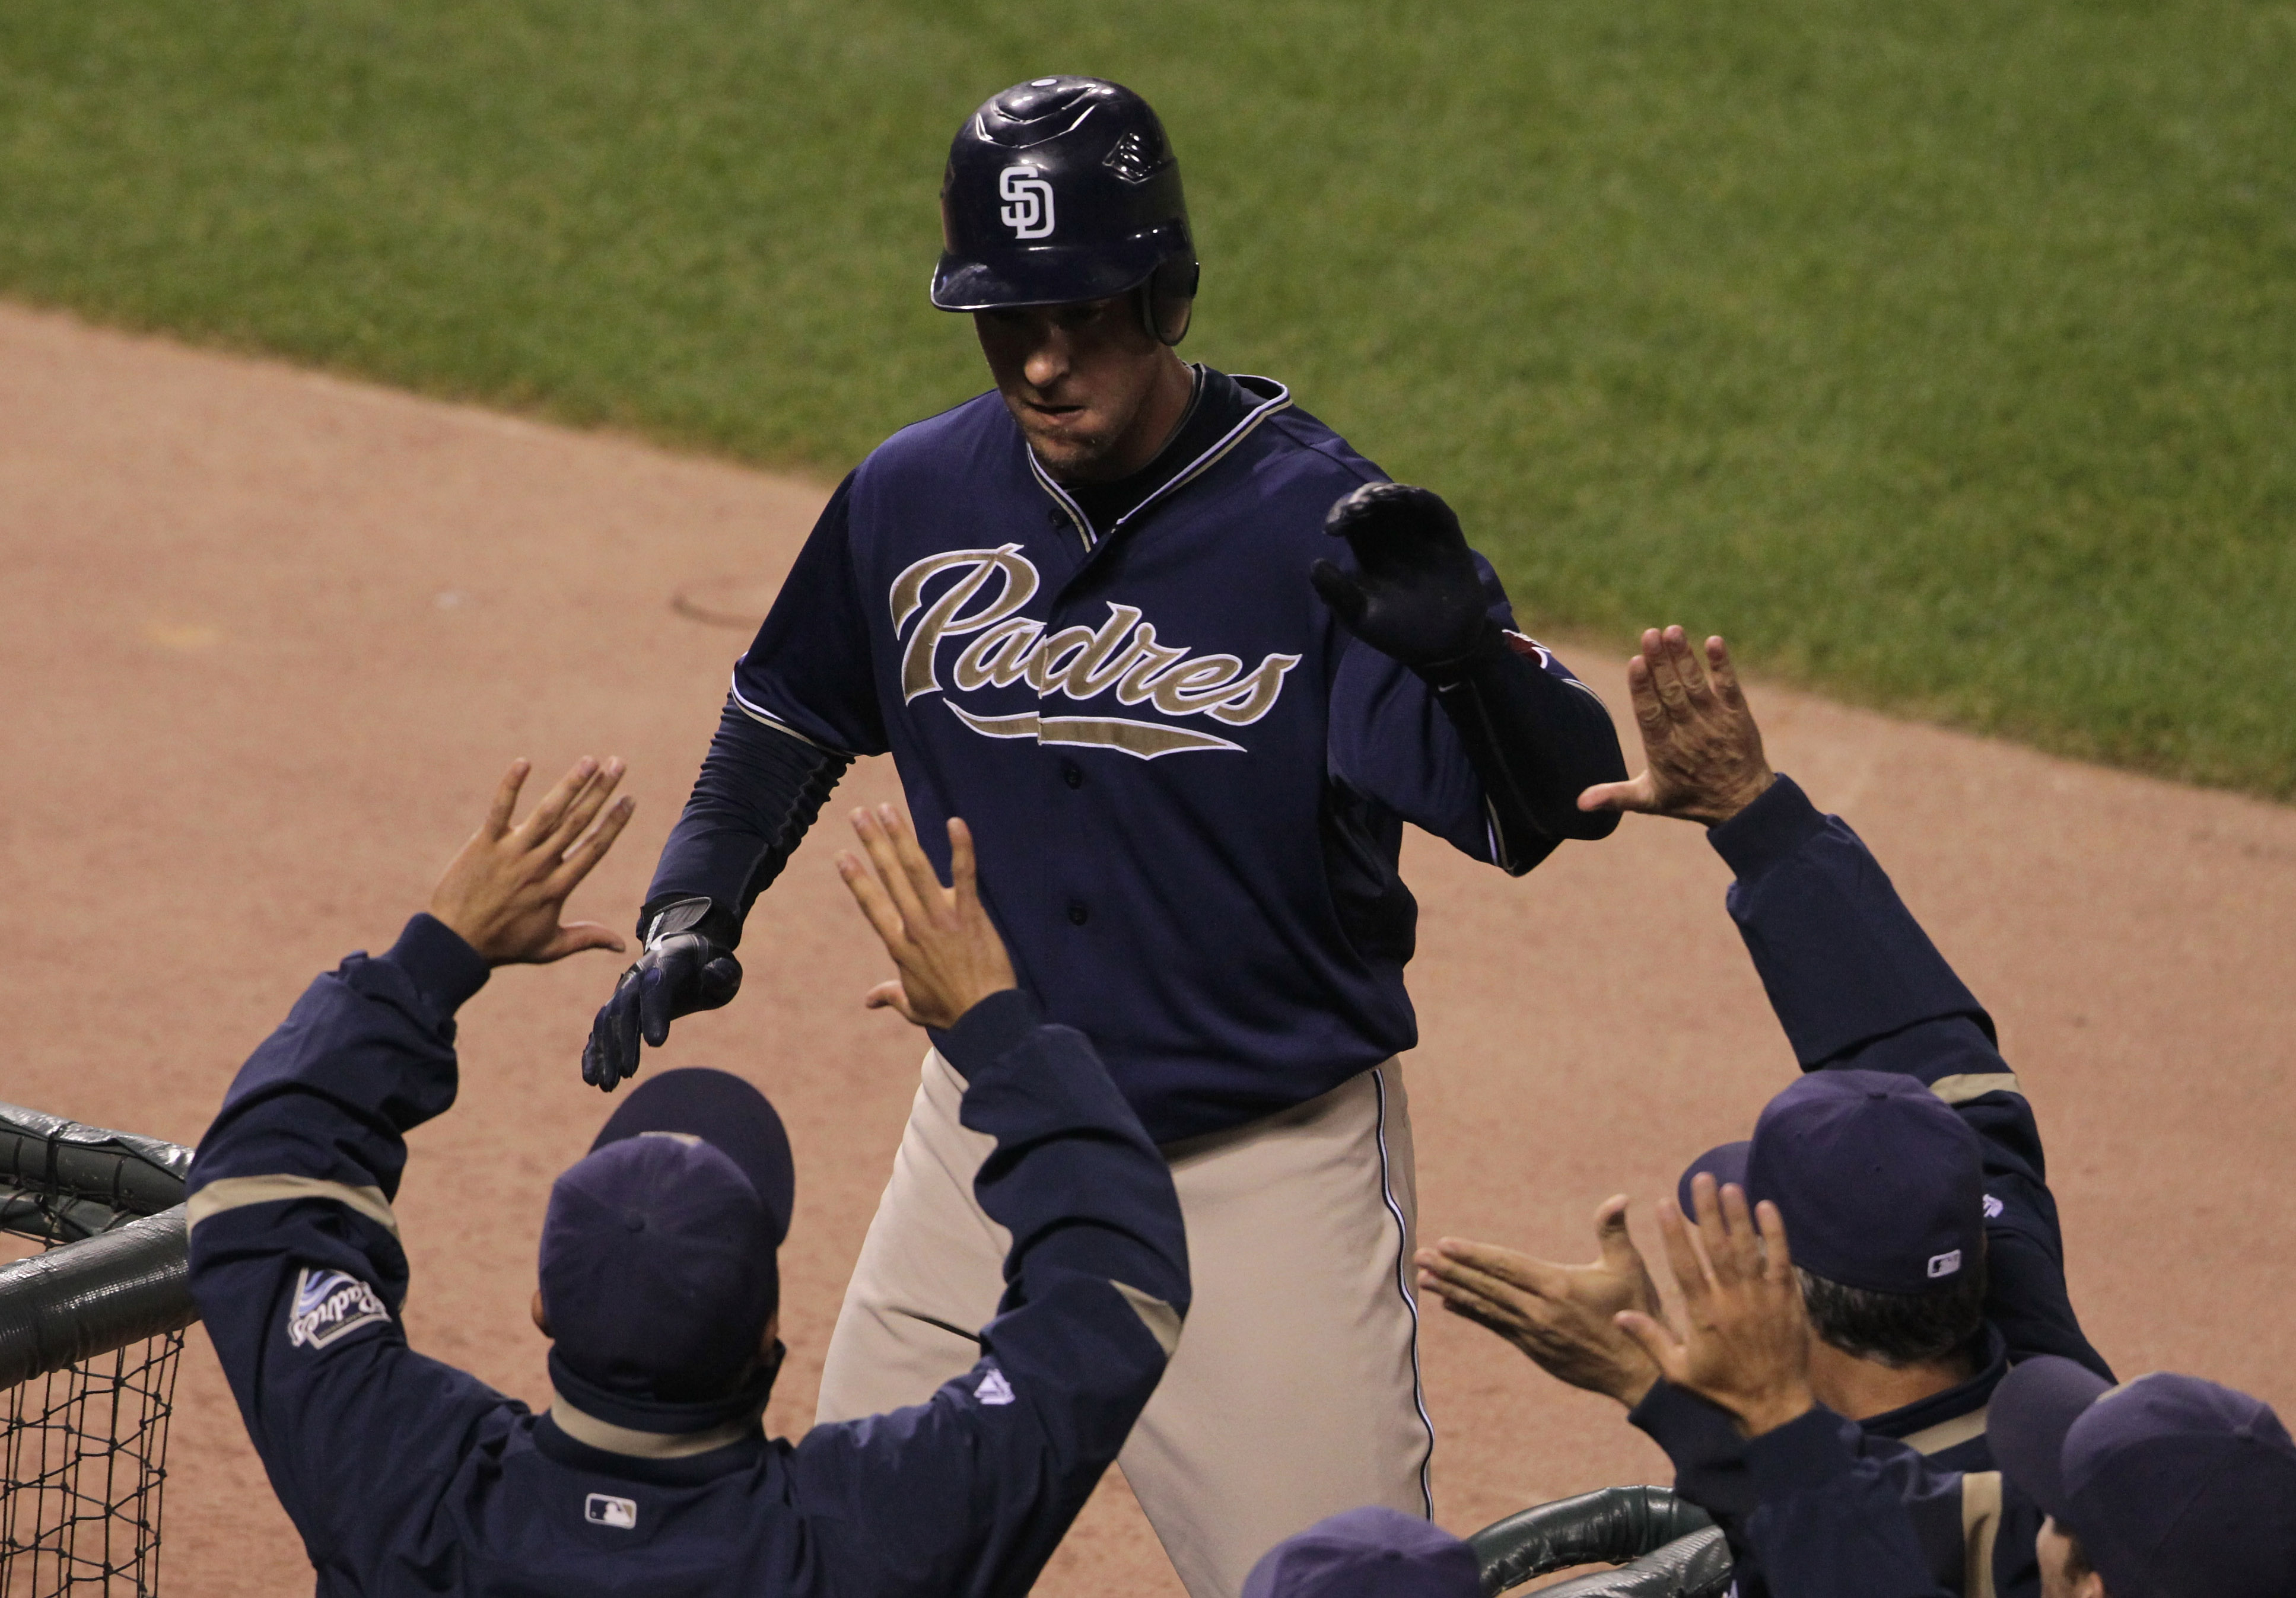 SAN FRANCISCO - OCTOBER 01:  Ryan Ludwick #47 of the San Diego Padres is congratulated by teammates after hitting a solo home run during the second inning against the San Francisco Giants October 1, 2010 in San Francisco, California.  (Photo by Justin Sul